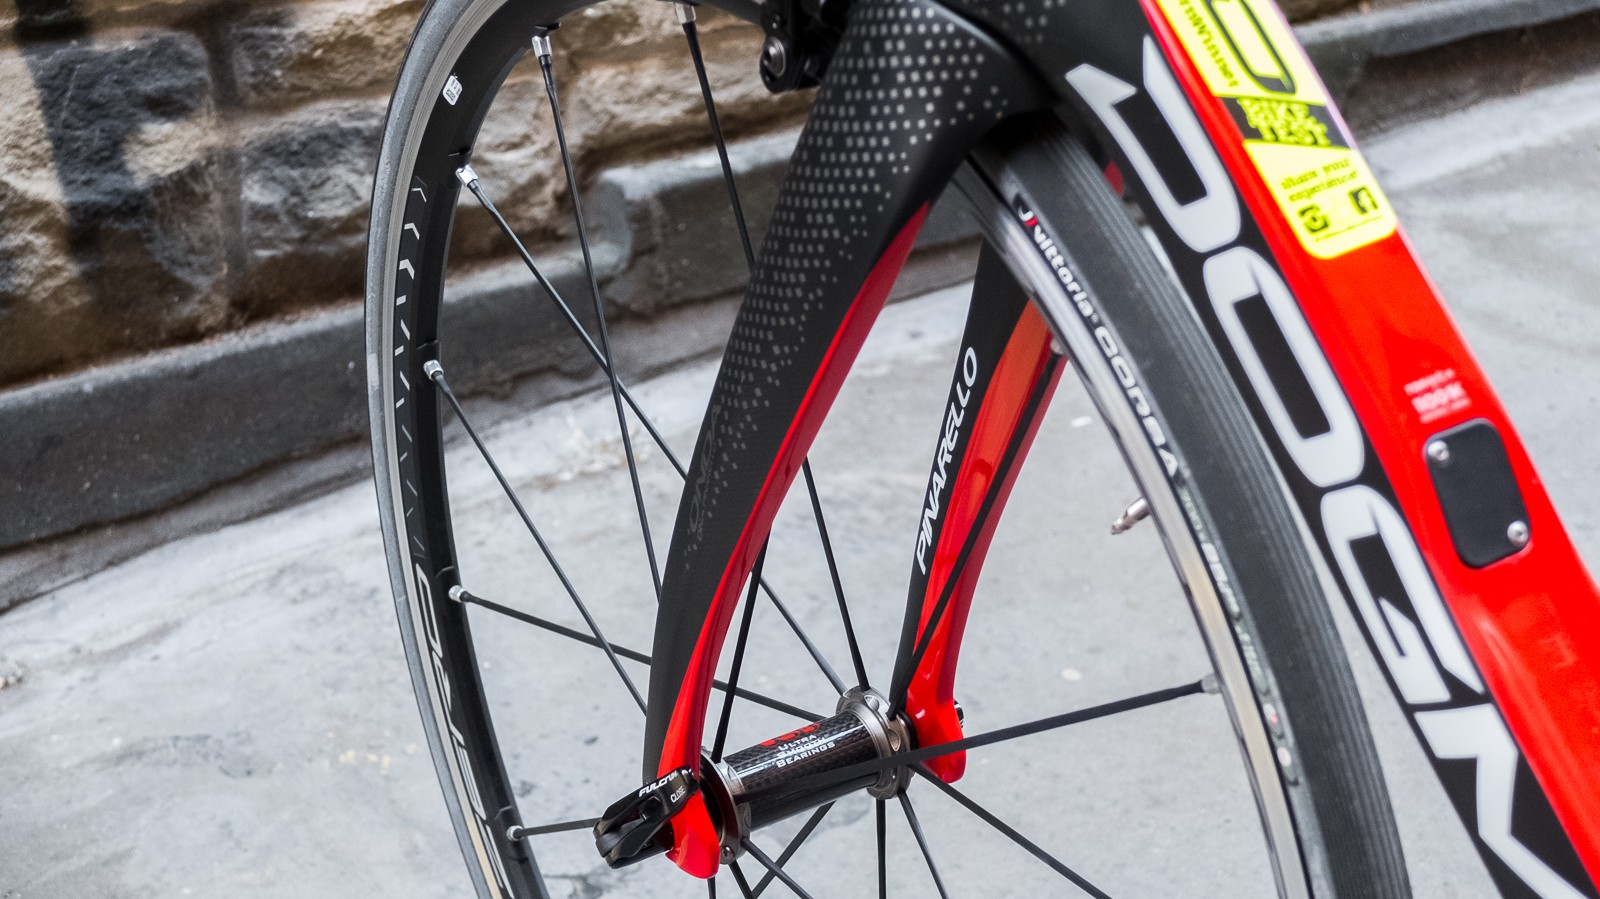 The legs of the fork are bowed to improve aerodynamics